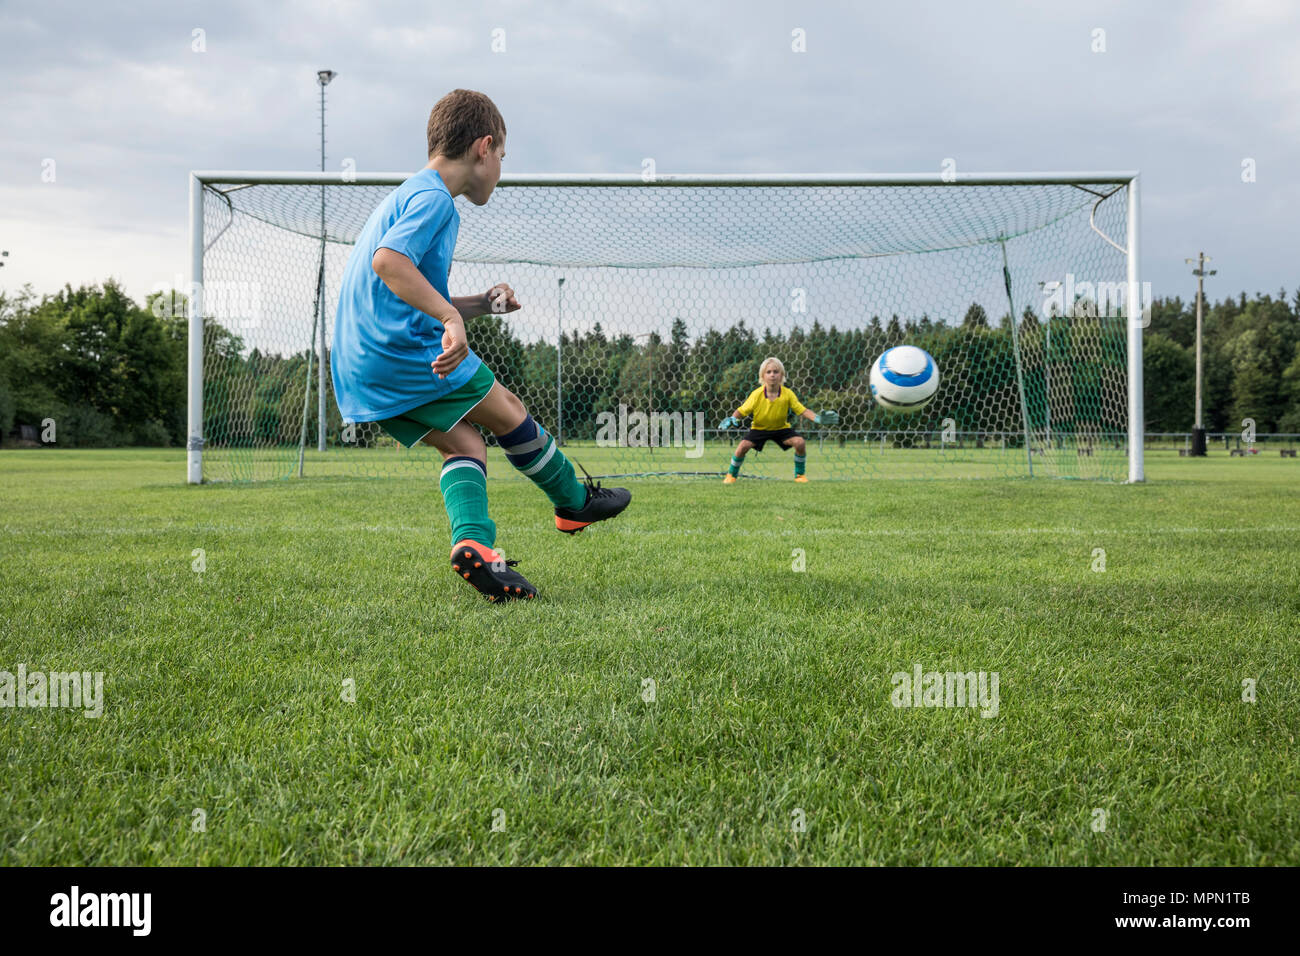 Young football player kicking ball in front of goal with goalkeeper - Stock Image